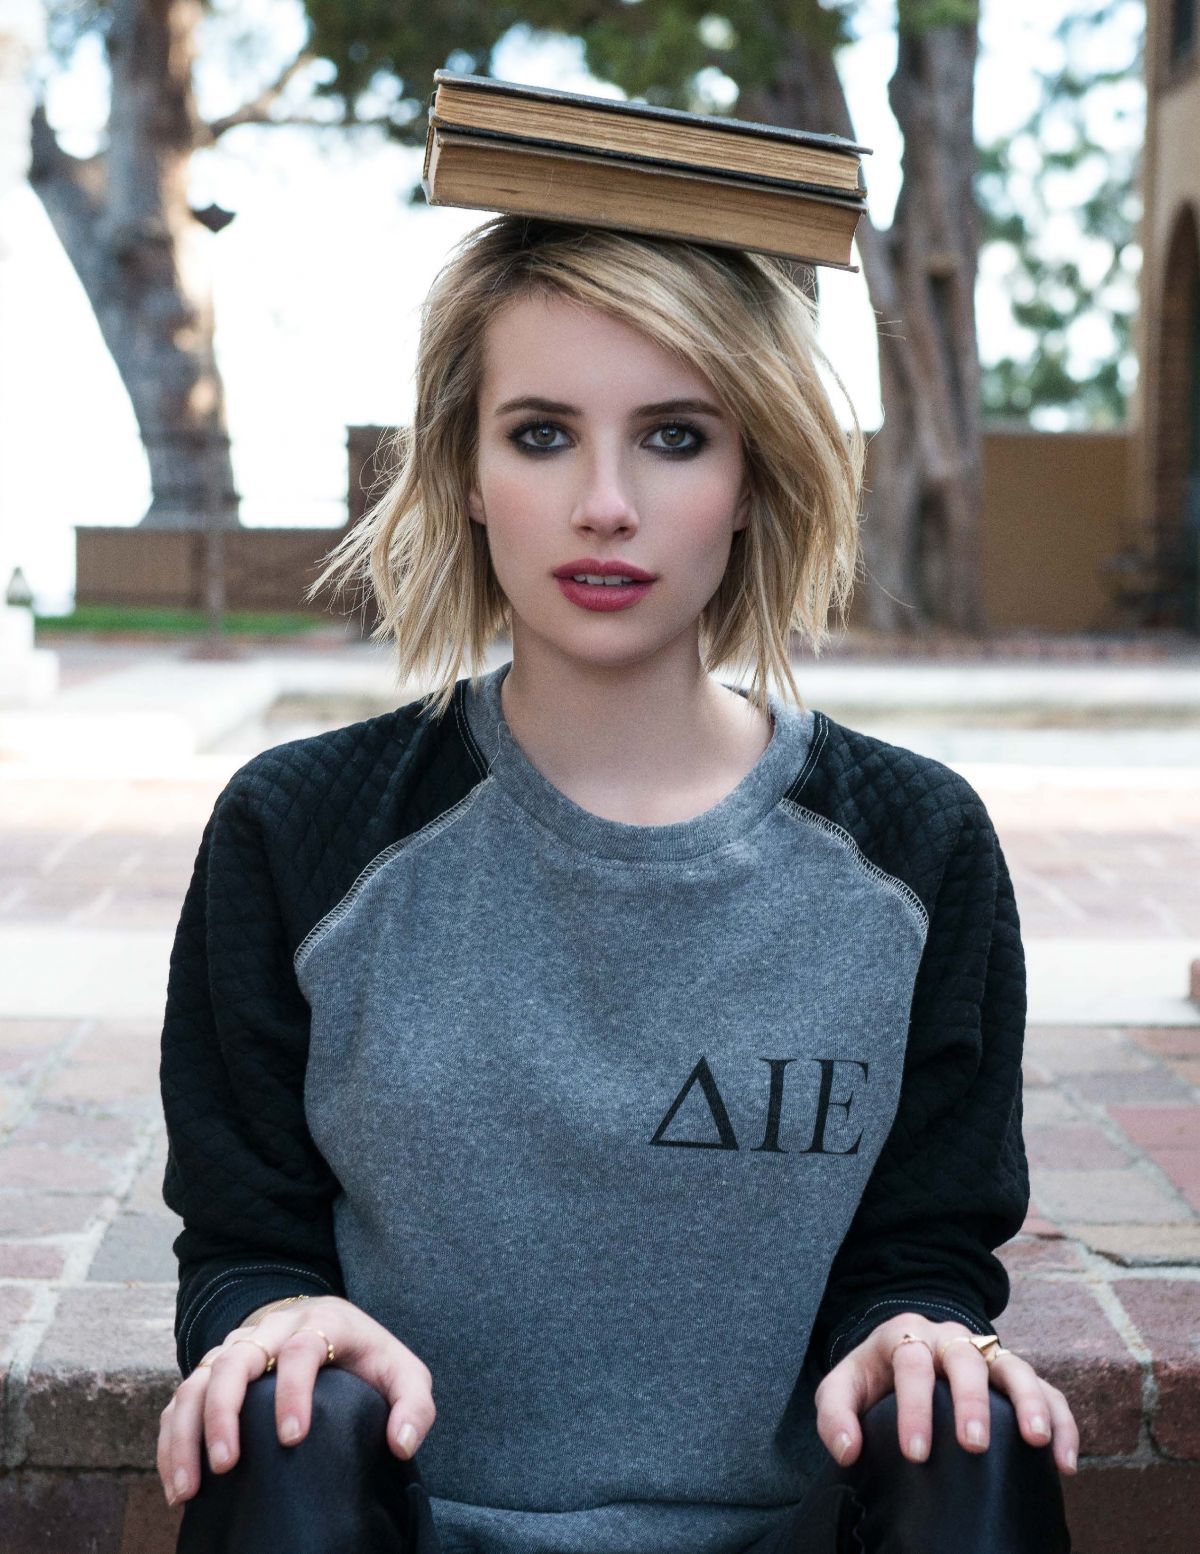 American Horror Story Wallpaper Iphone Photoshoot 2014 16 Emma Roberts Fashion